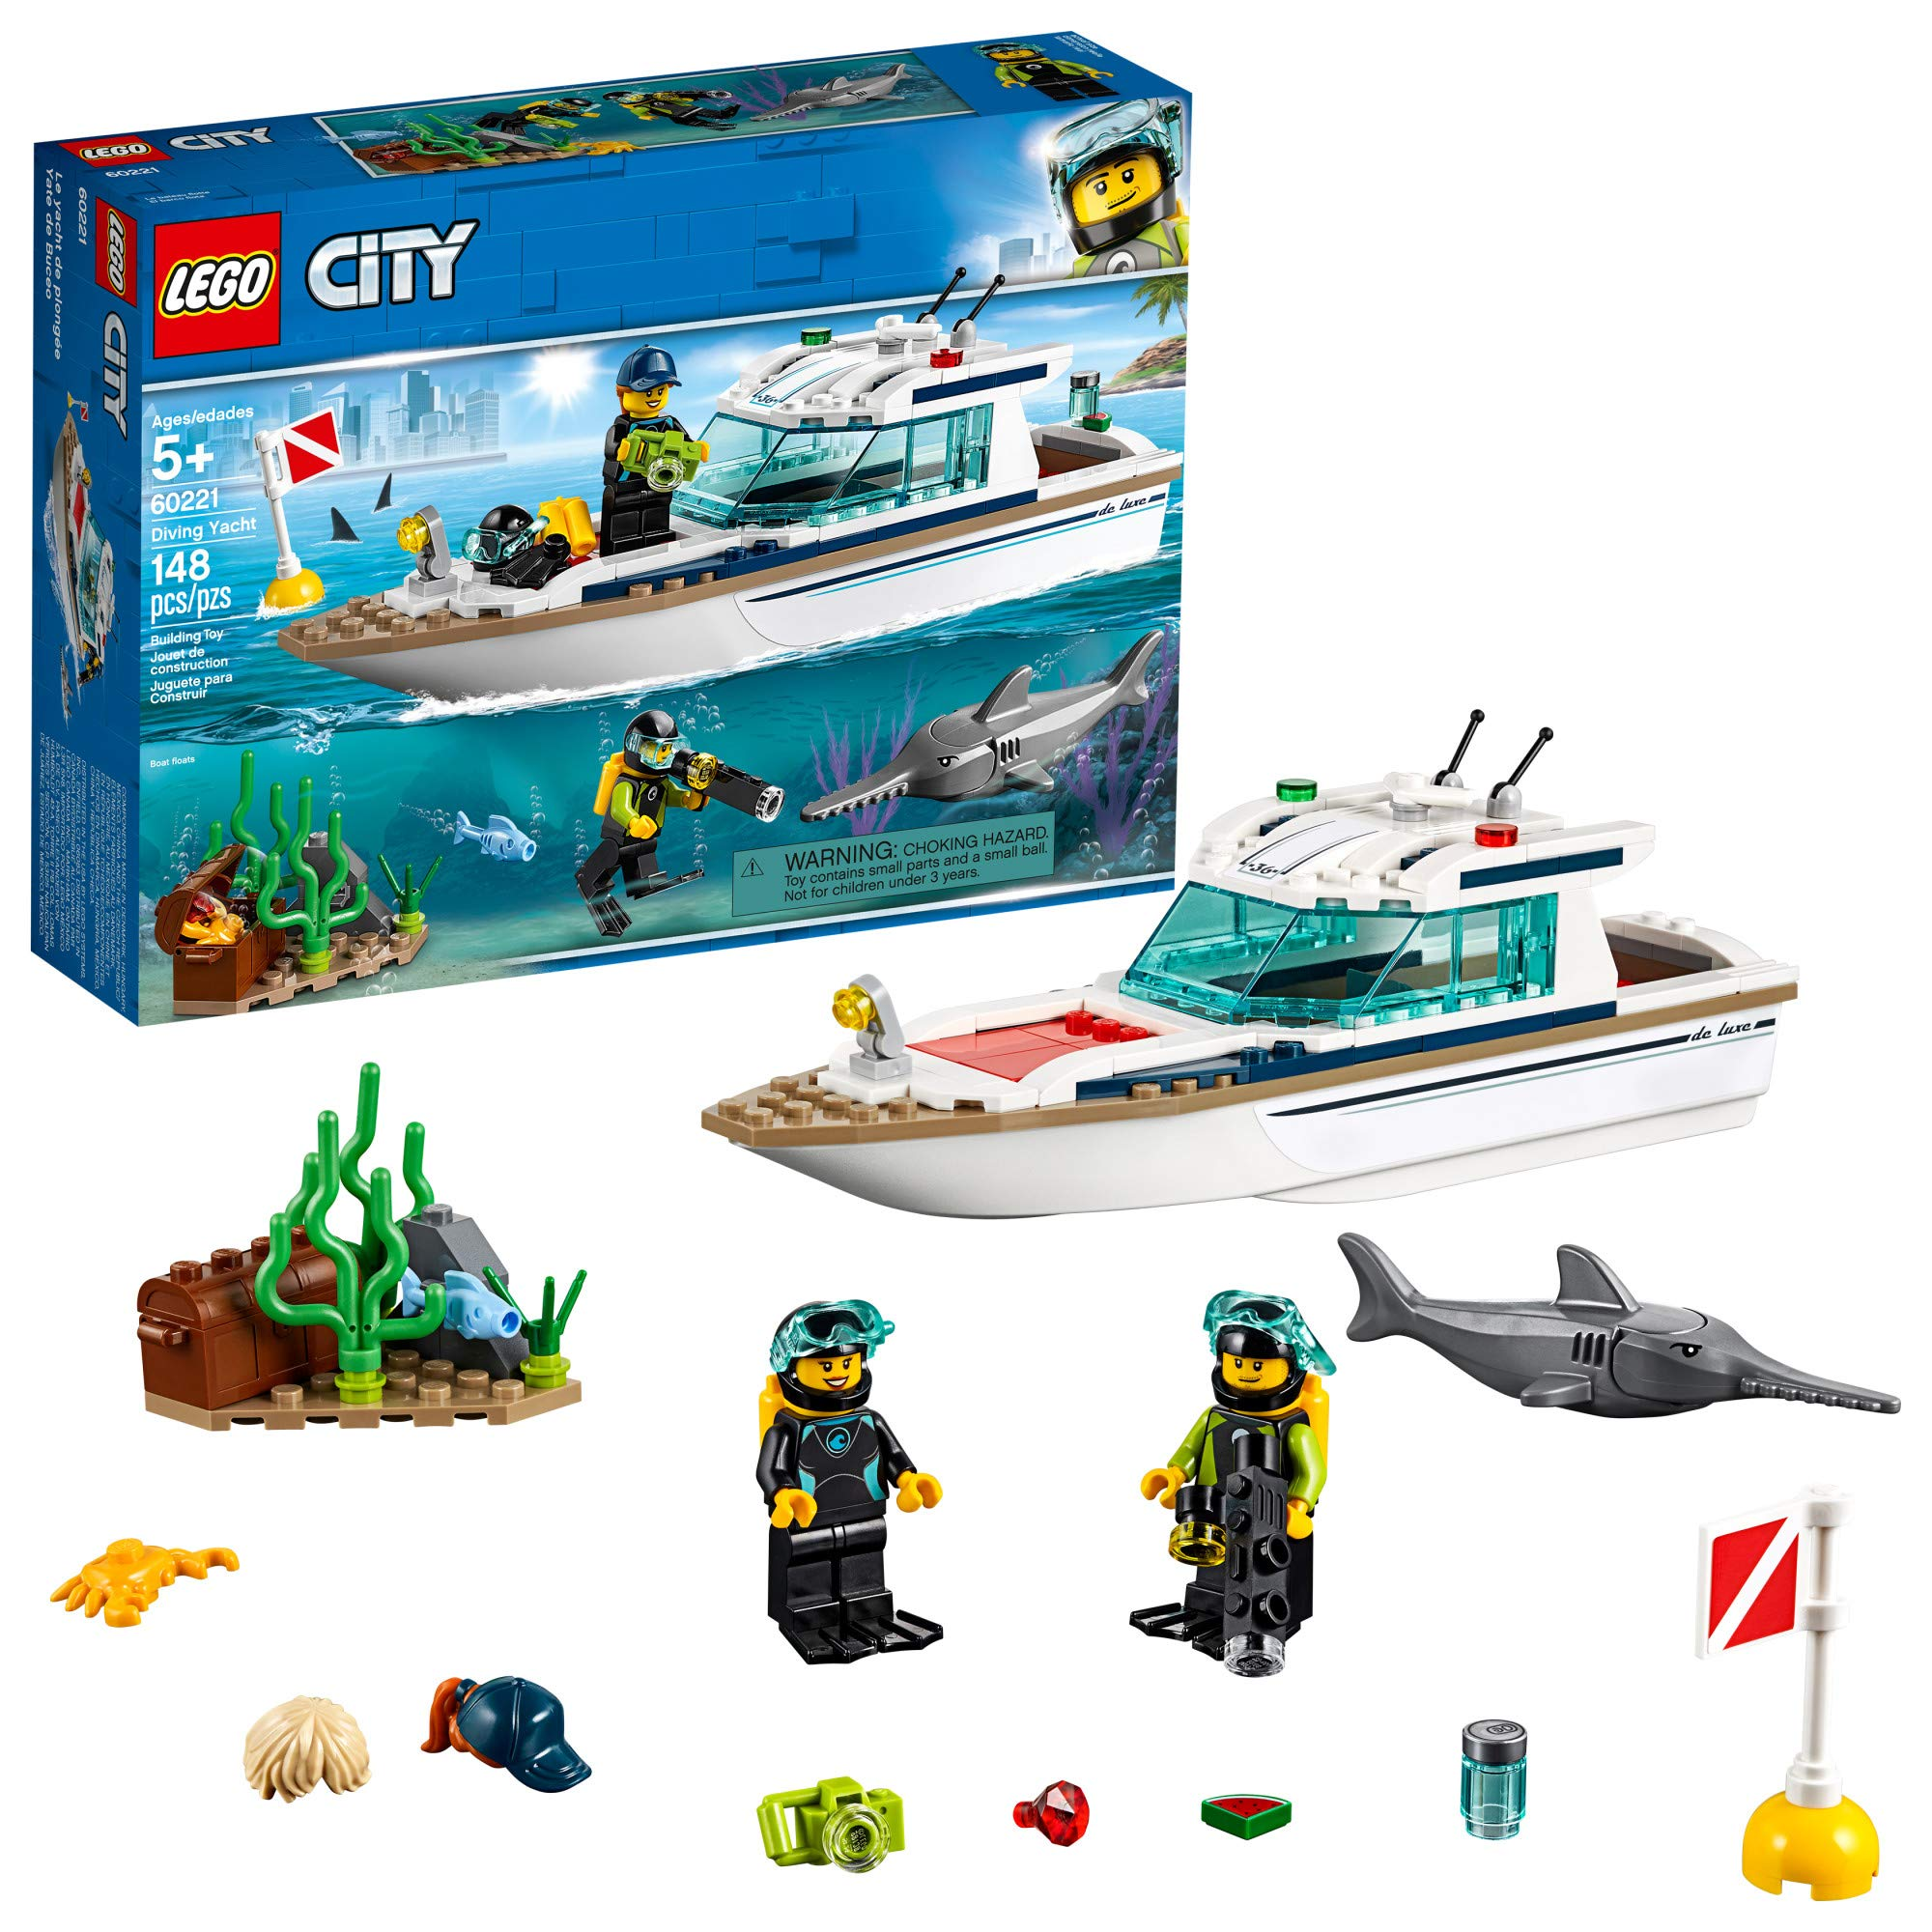 LEGO City Great Vehicles Diving Yacht 60221 Building Kit, 2019 (148 Pieces) by LEGO